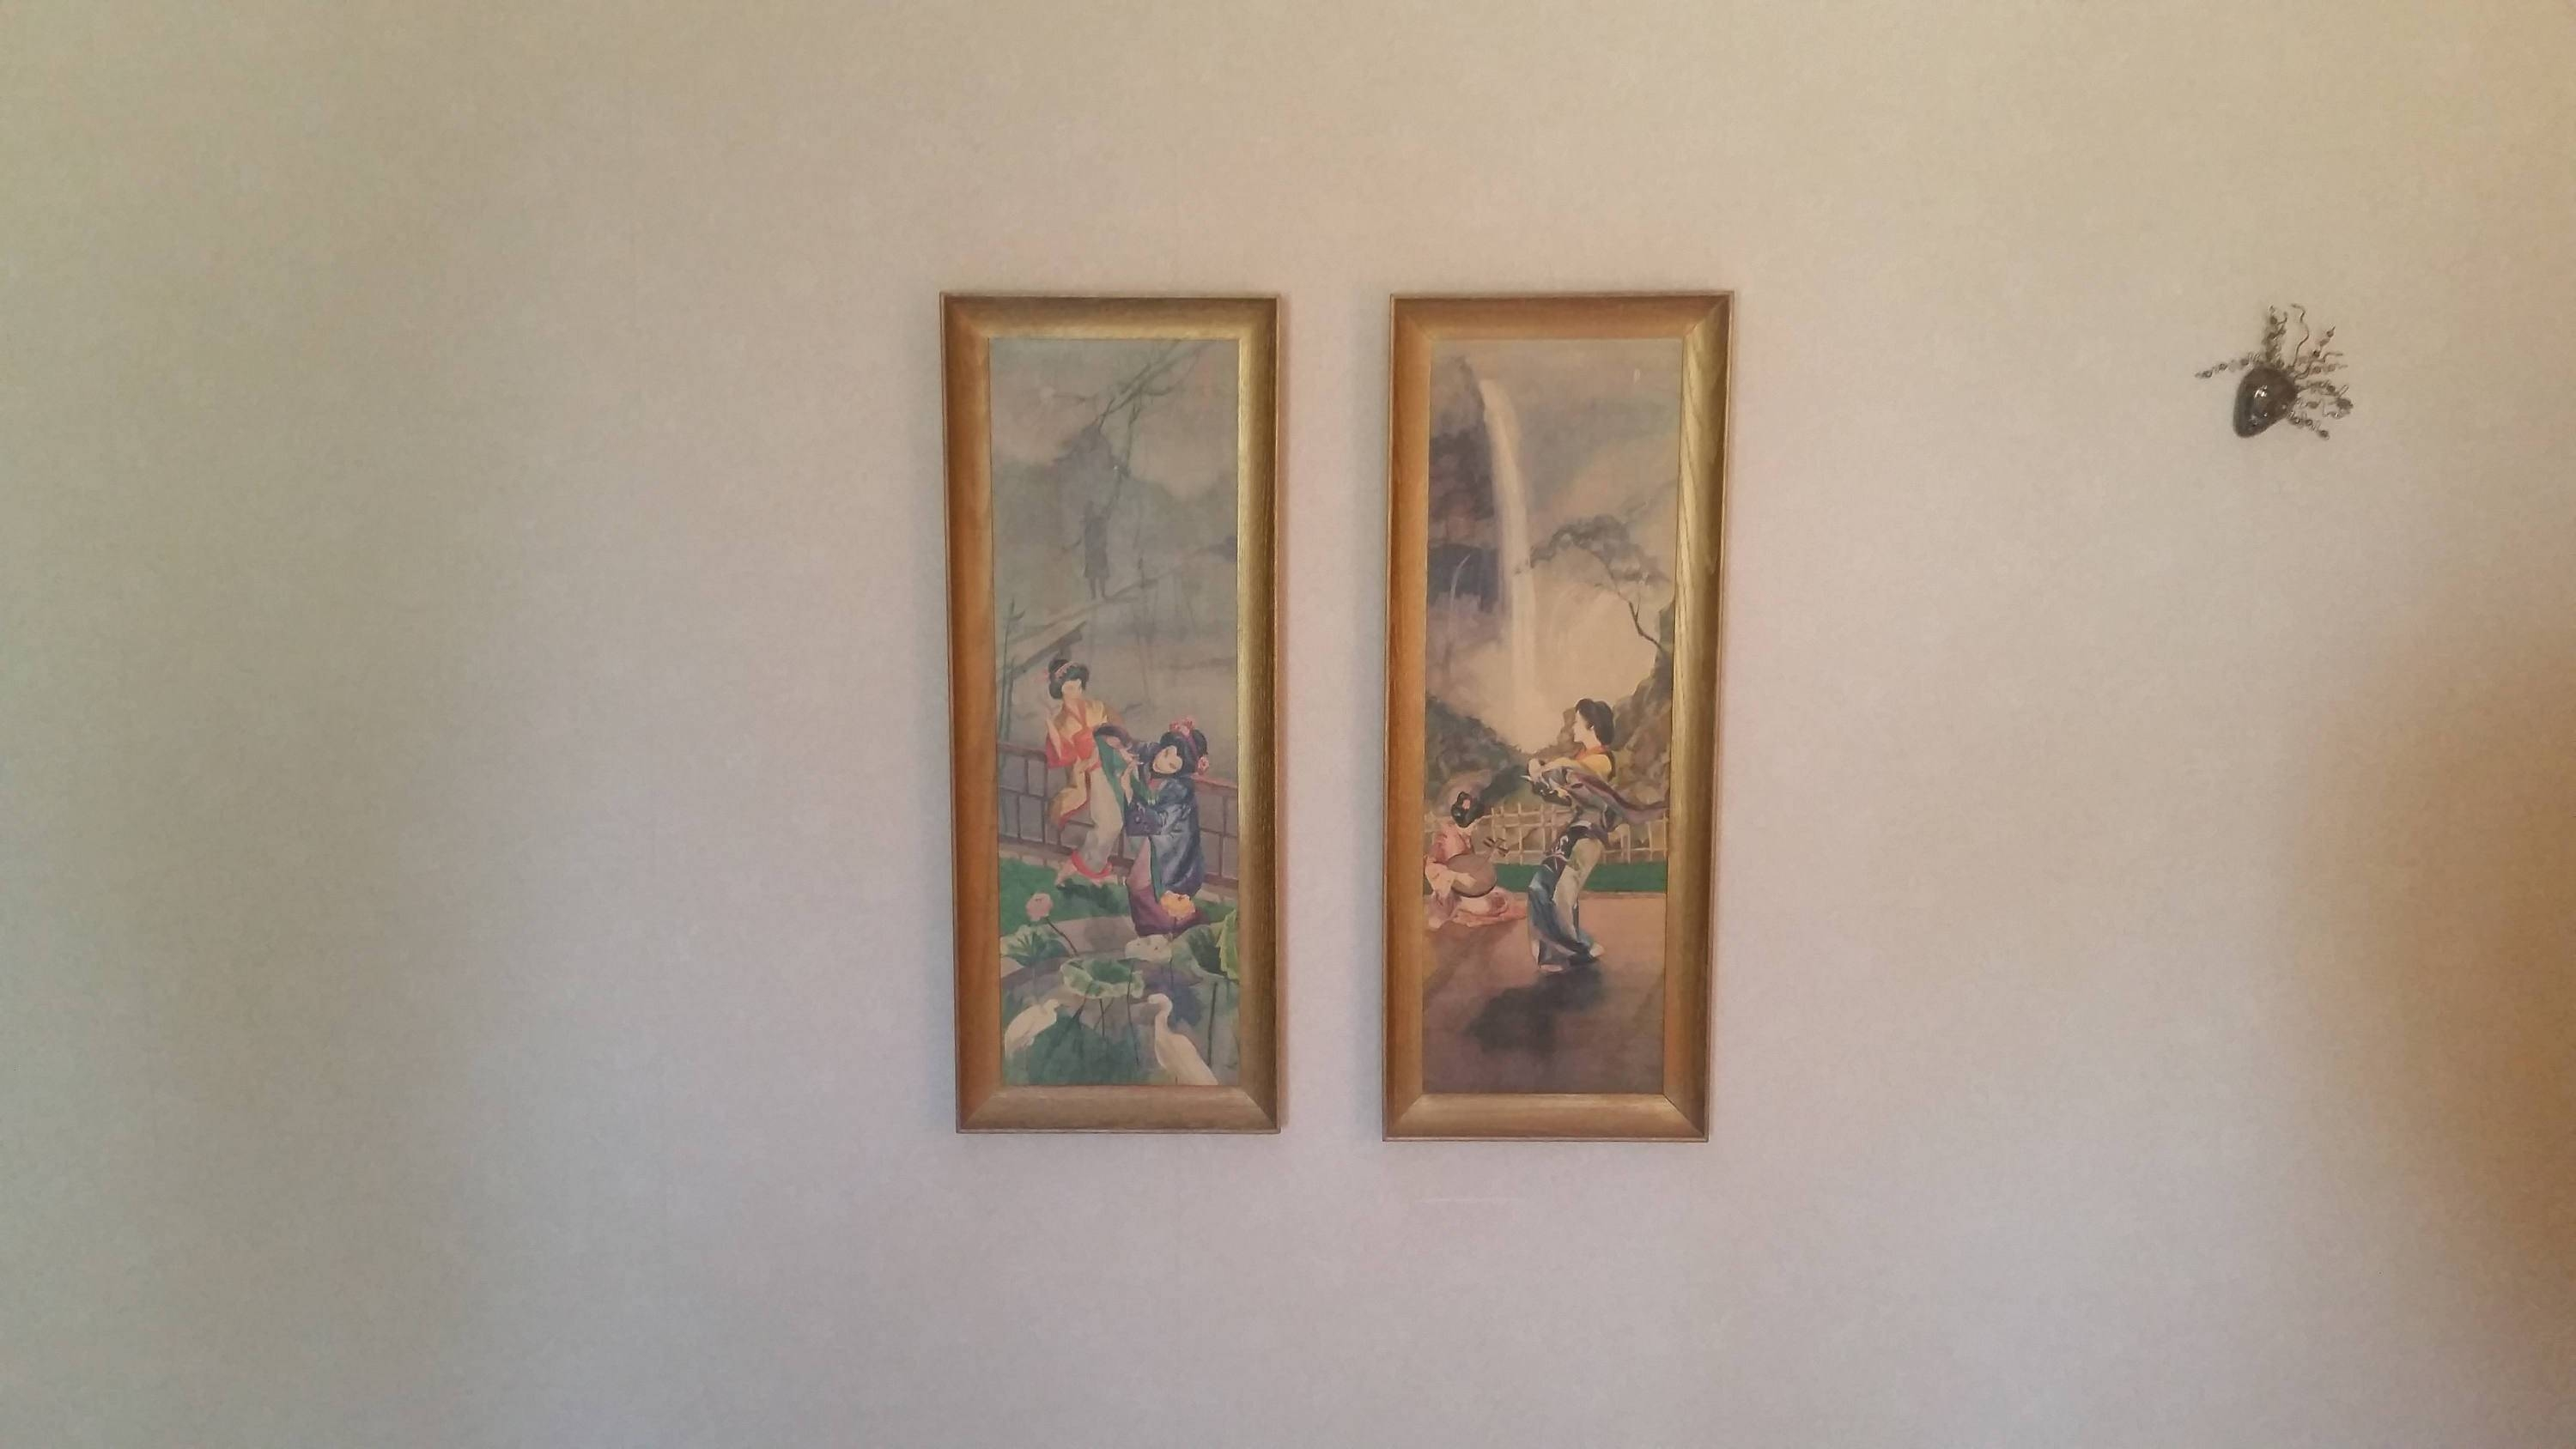 Vintage 1960's Japanese Framed Panels Mid Century Modern Pertaining To Most Recent Japanese Wall Art Panels (View 17 of 25)